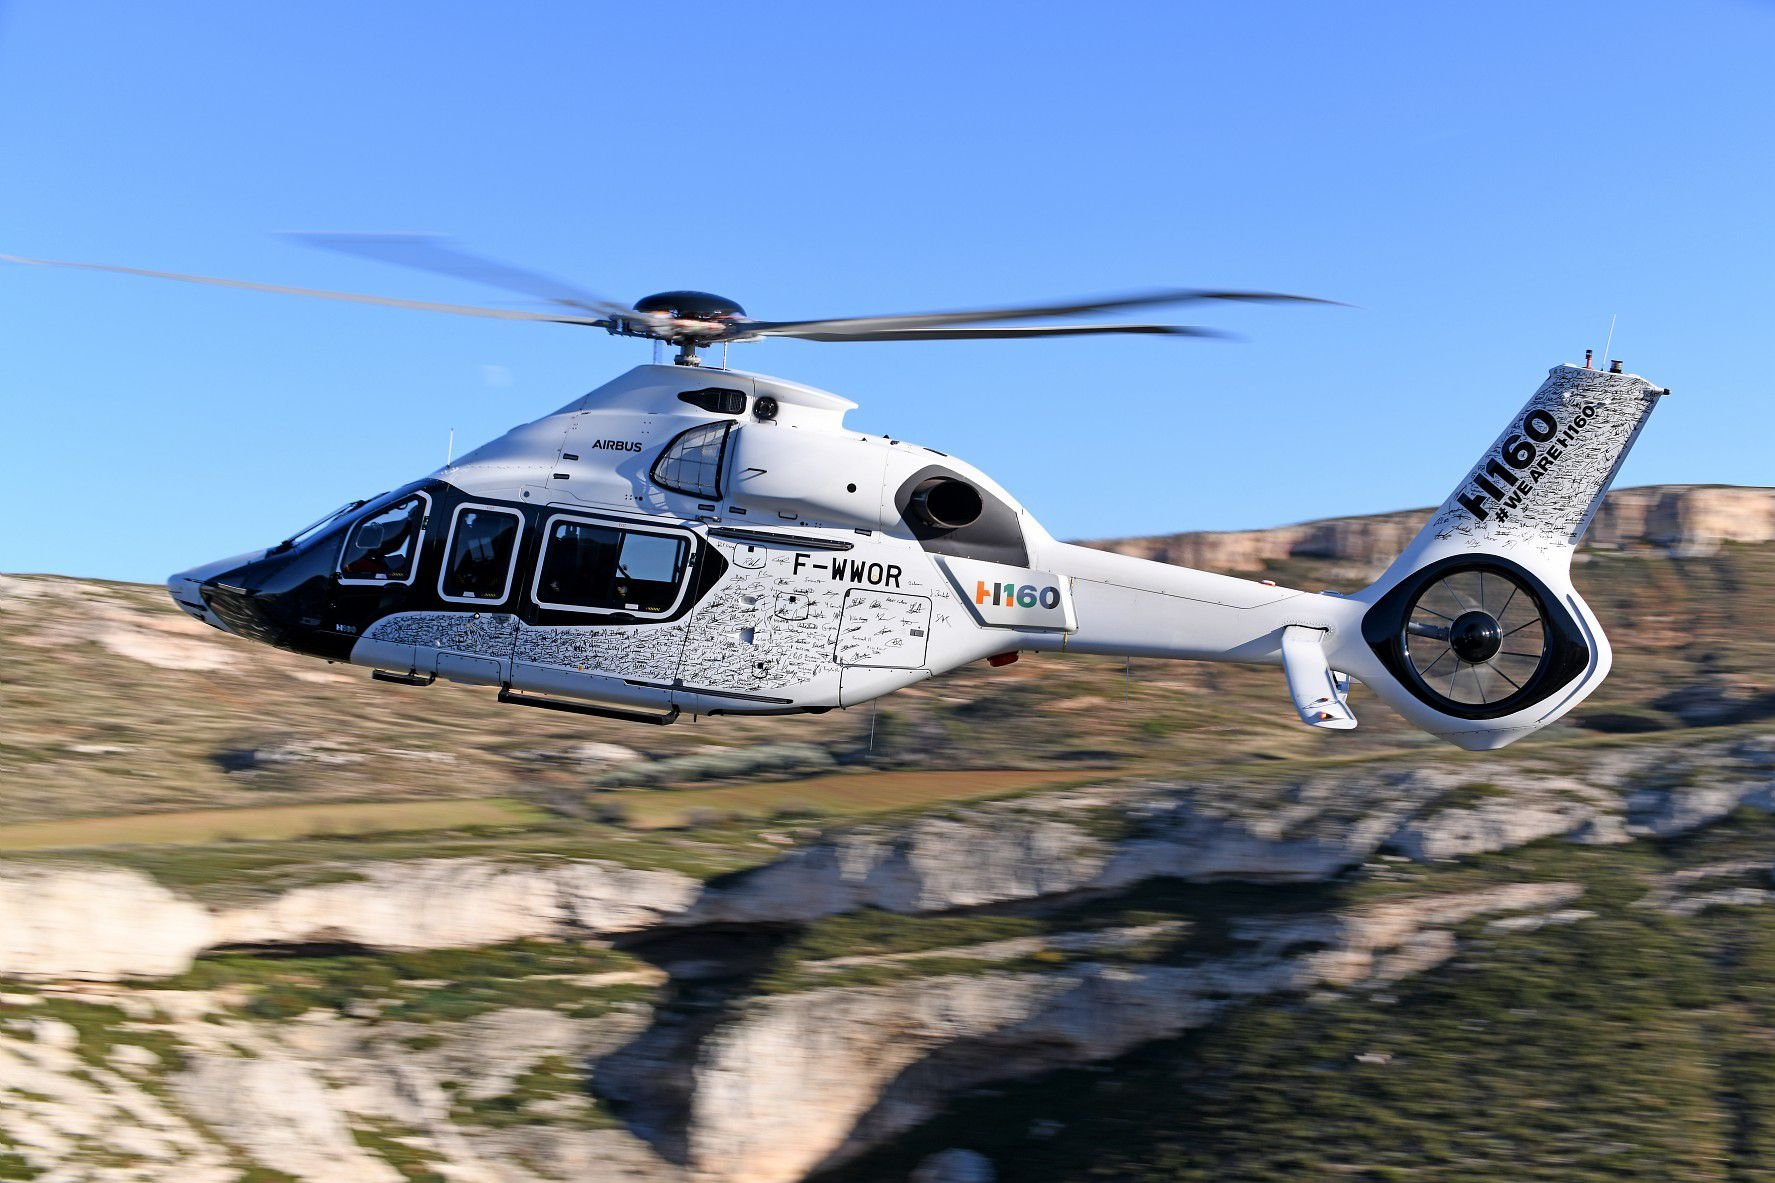 H160 [Airbus Helicopters/Anthony Pecchi]